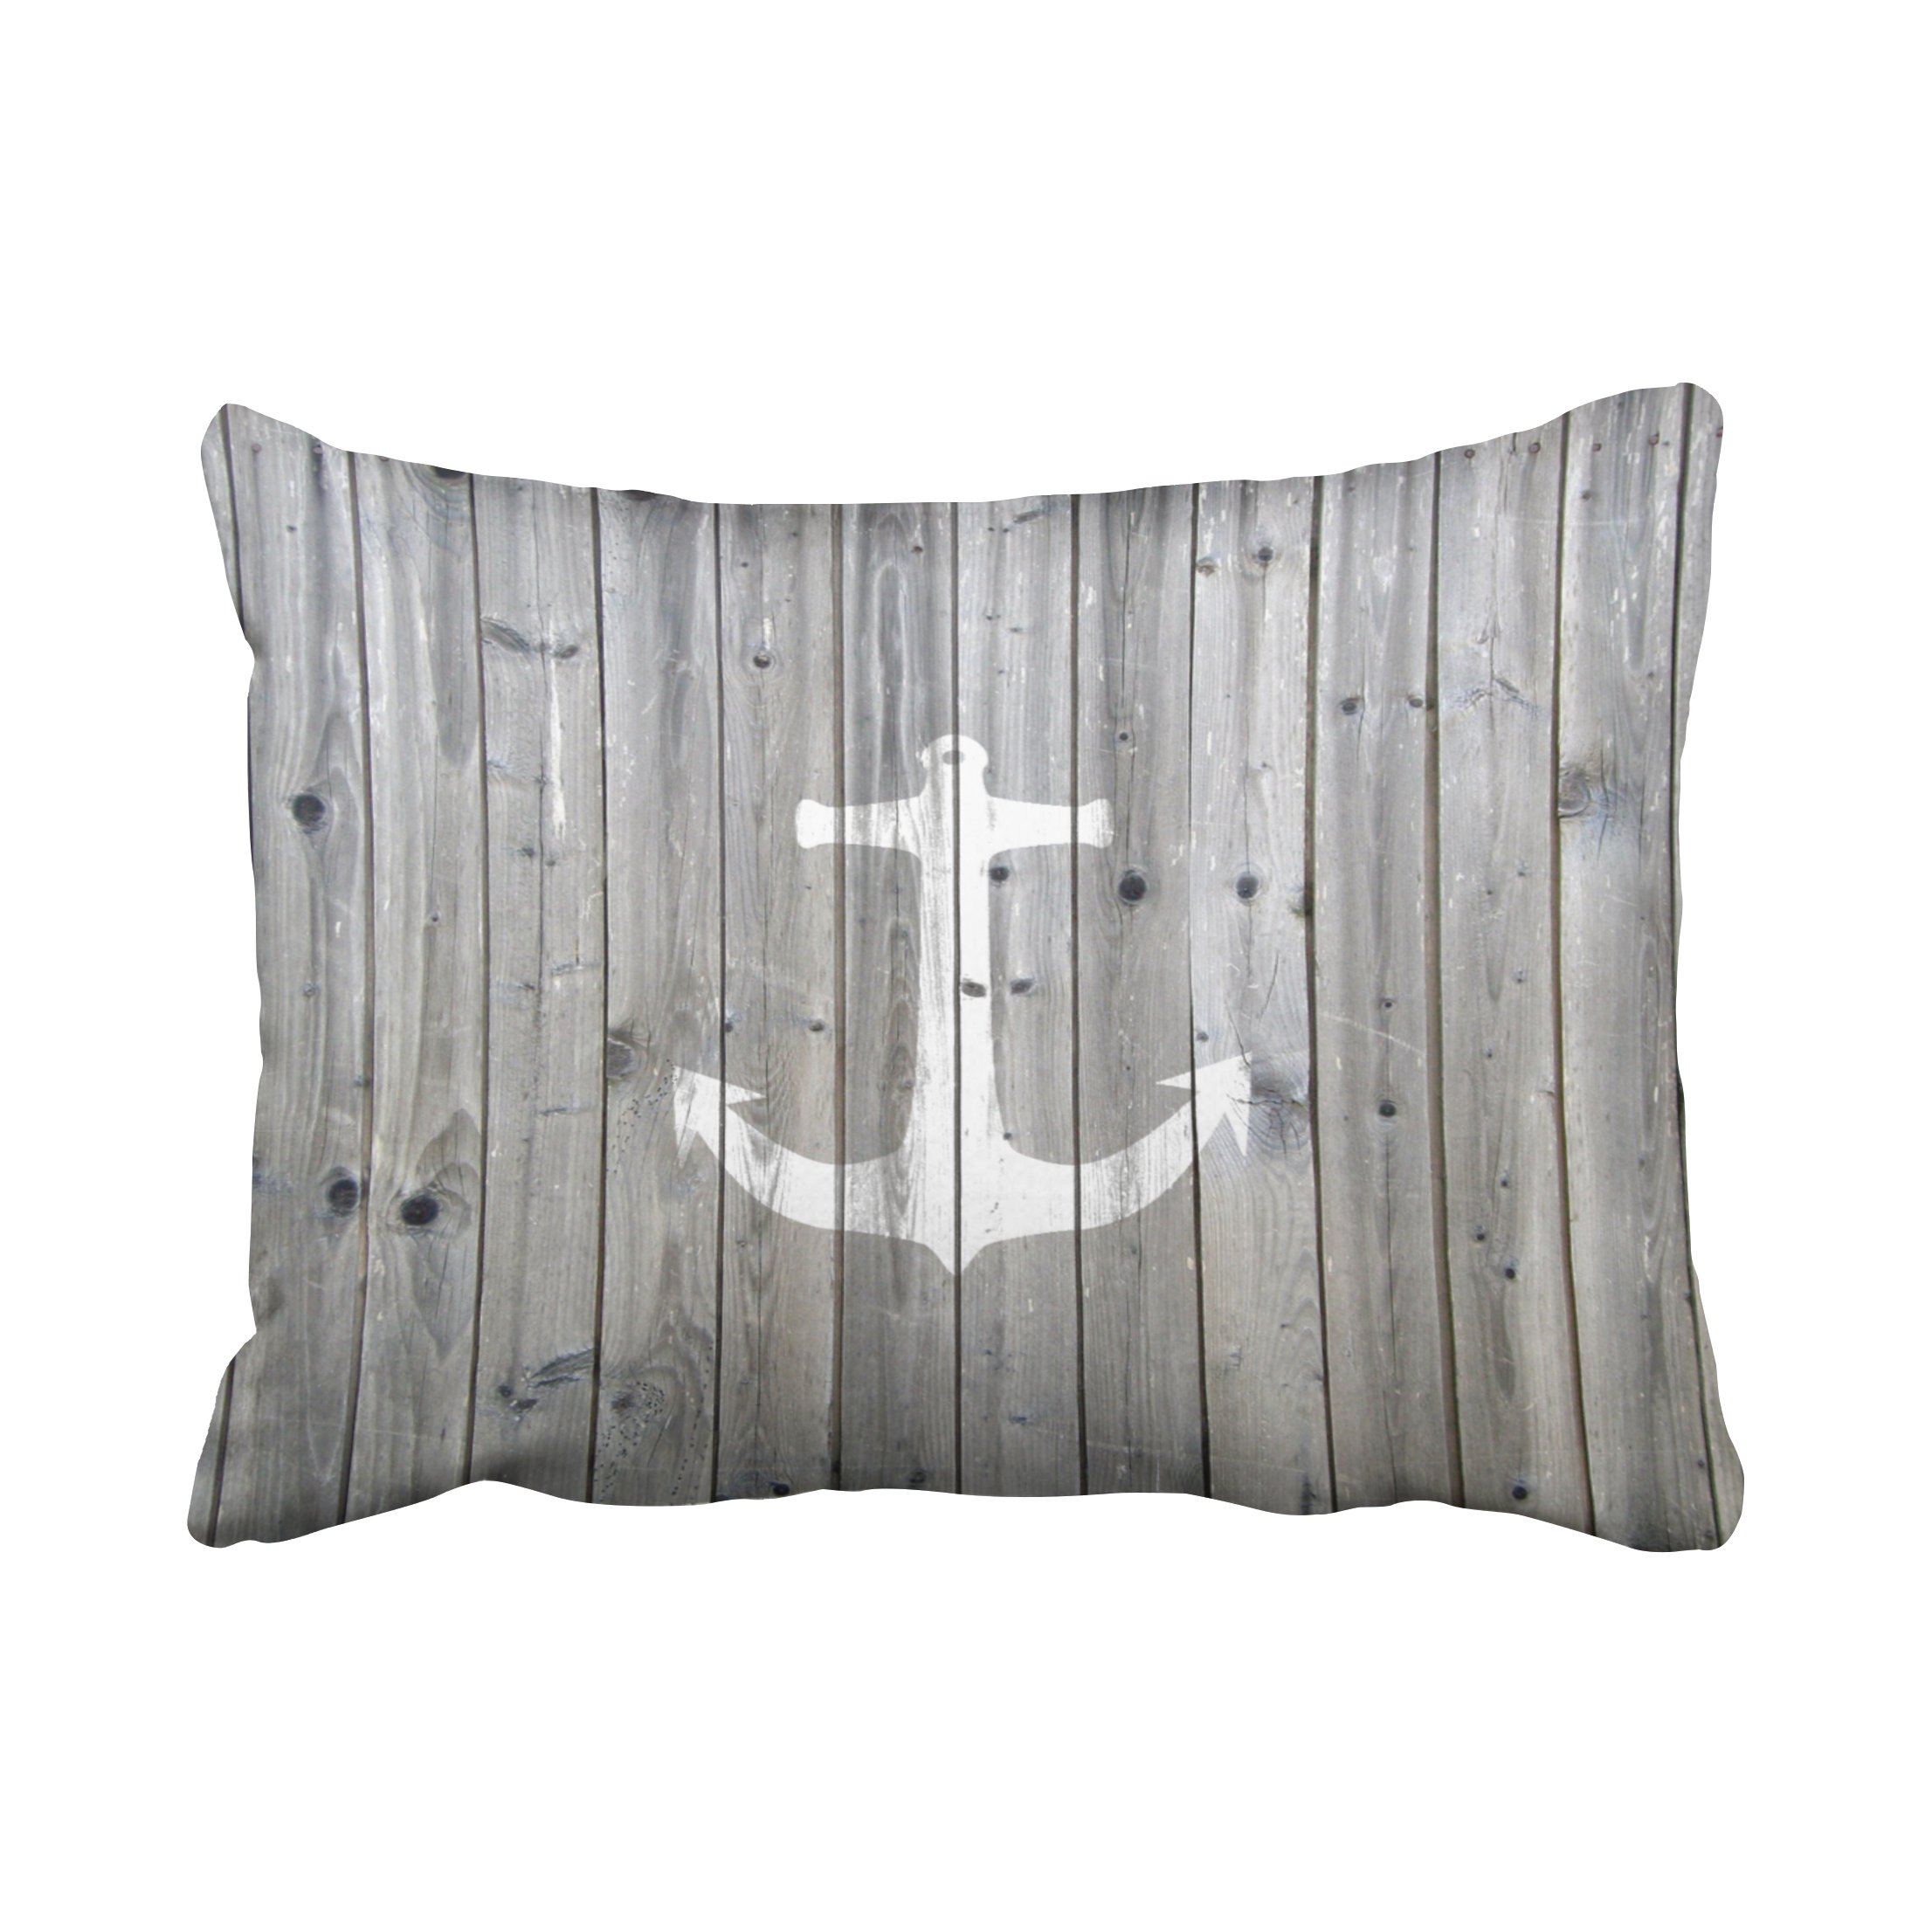 Accrocn Pillowcases Hipster Vintage White Nautical Anchor On Gray Wood Cushion Decorative Pillowcase Polyester 20 x 26 Inch Rectangl Standard Size Pillow Covers With Hidden Zipper